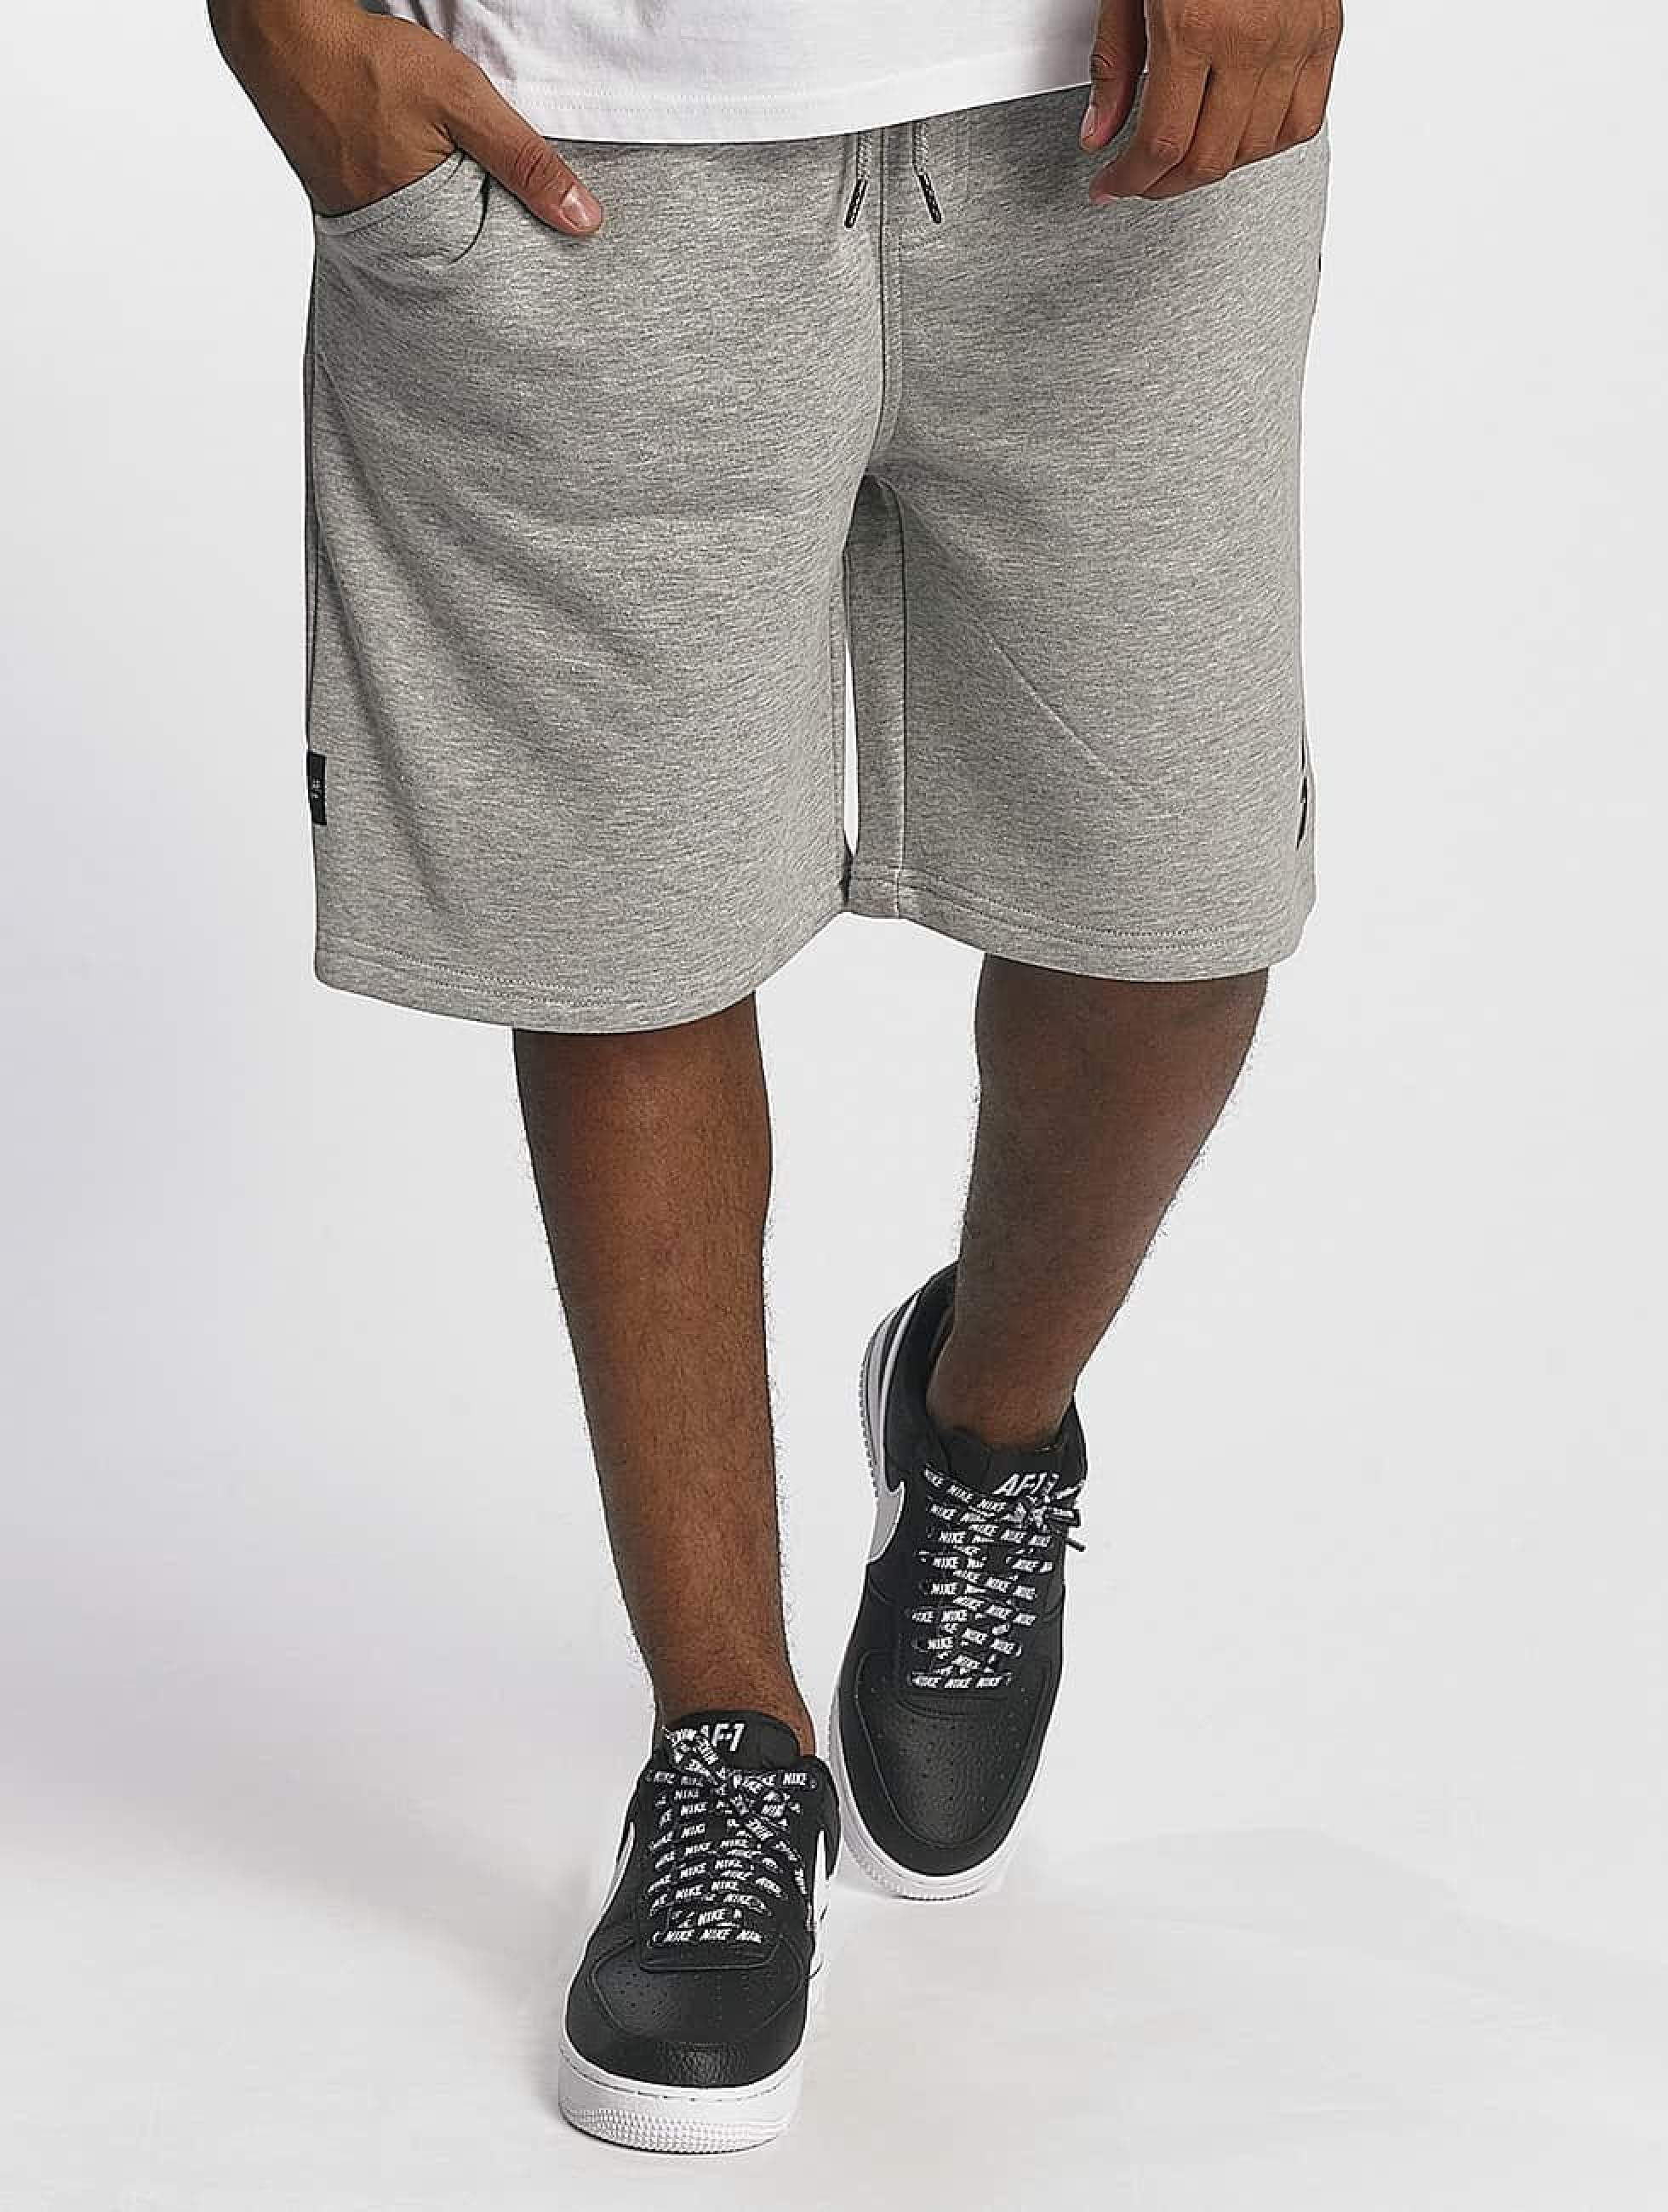 Rocawear / Short Basic in grey M